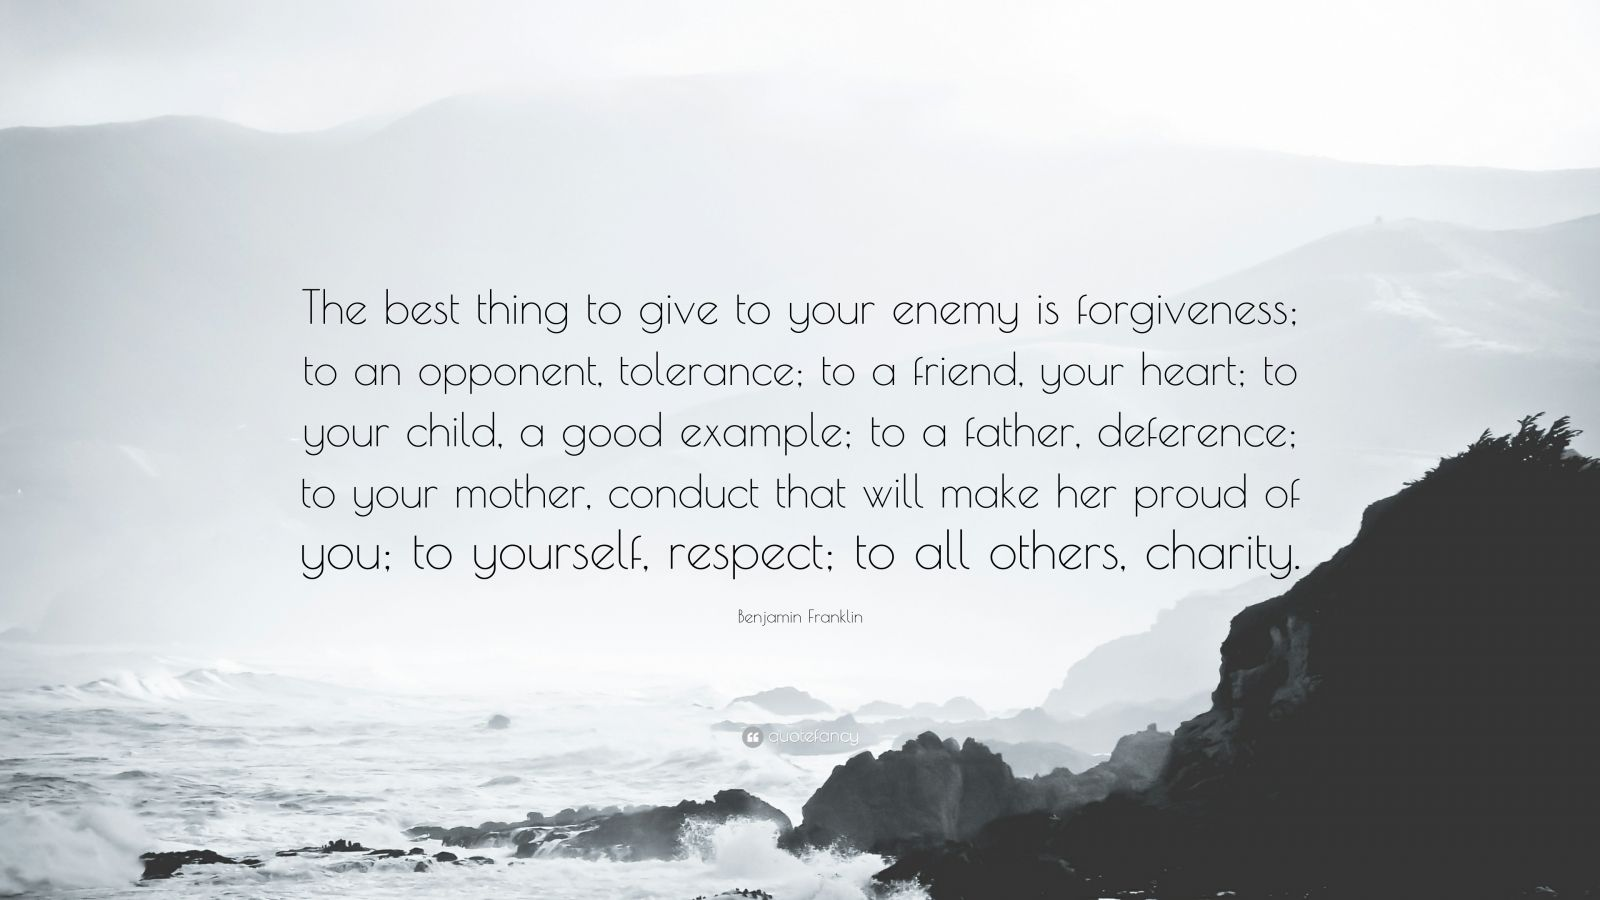 """Benjamin Franklin Quote: """"The best thing to give to your enemy is forgiveness; to an opponent, tolerance; to a friend, your heart; to your child, a good example; to a father, deference; to your mother, conduct that will make her proud of you; to yourself, respect; to all others, charity."""""""